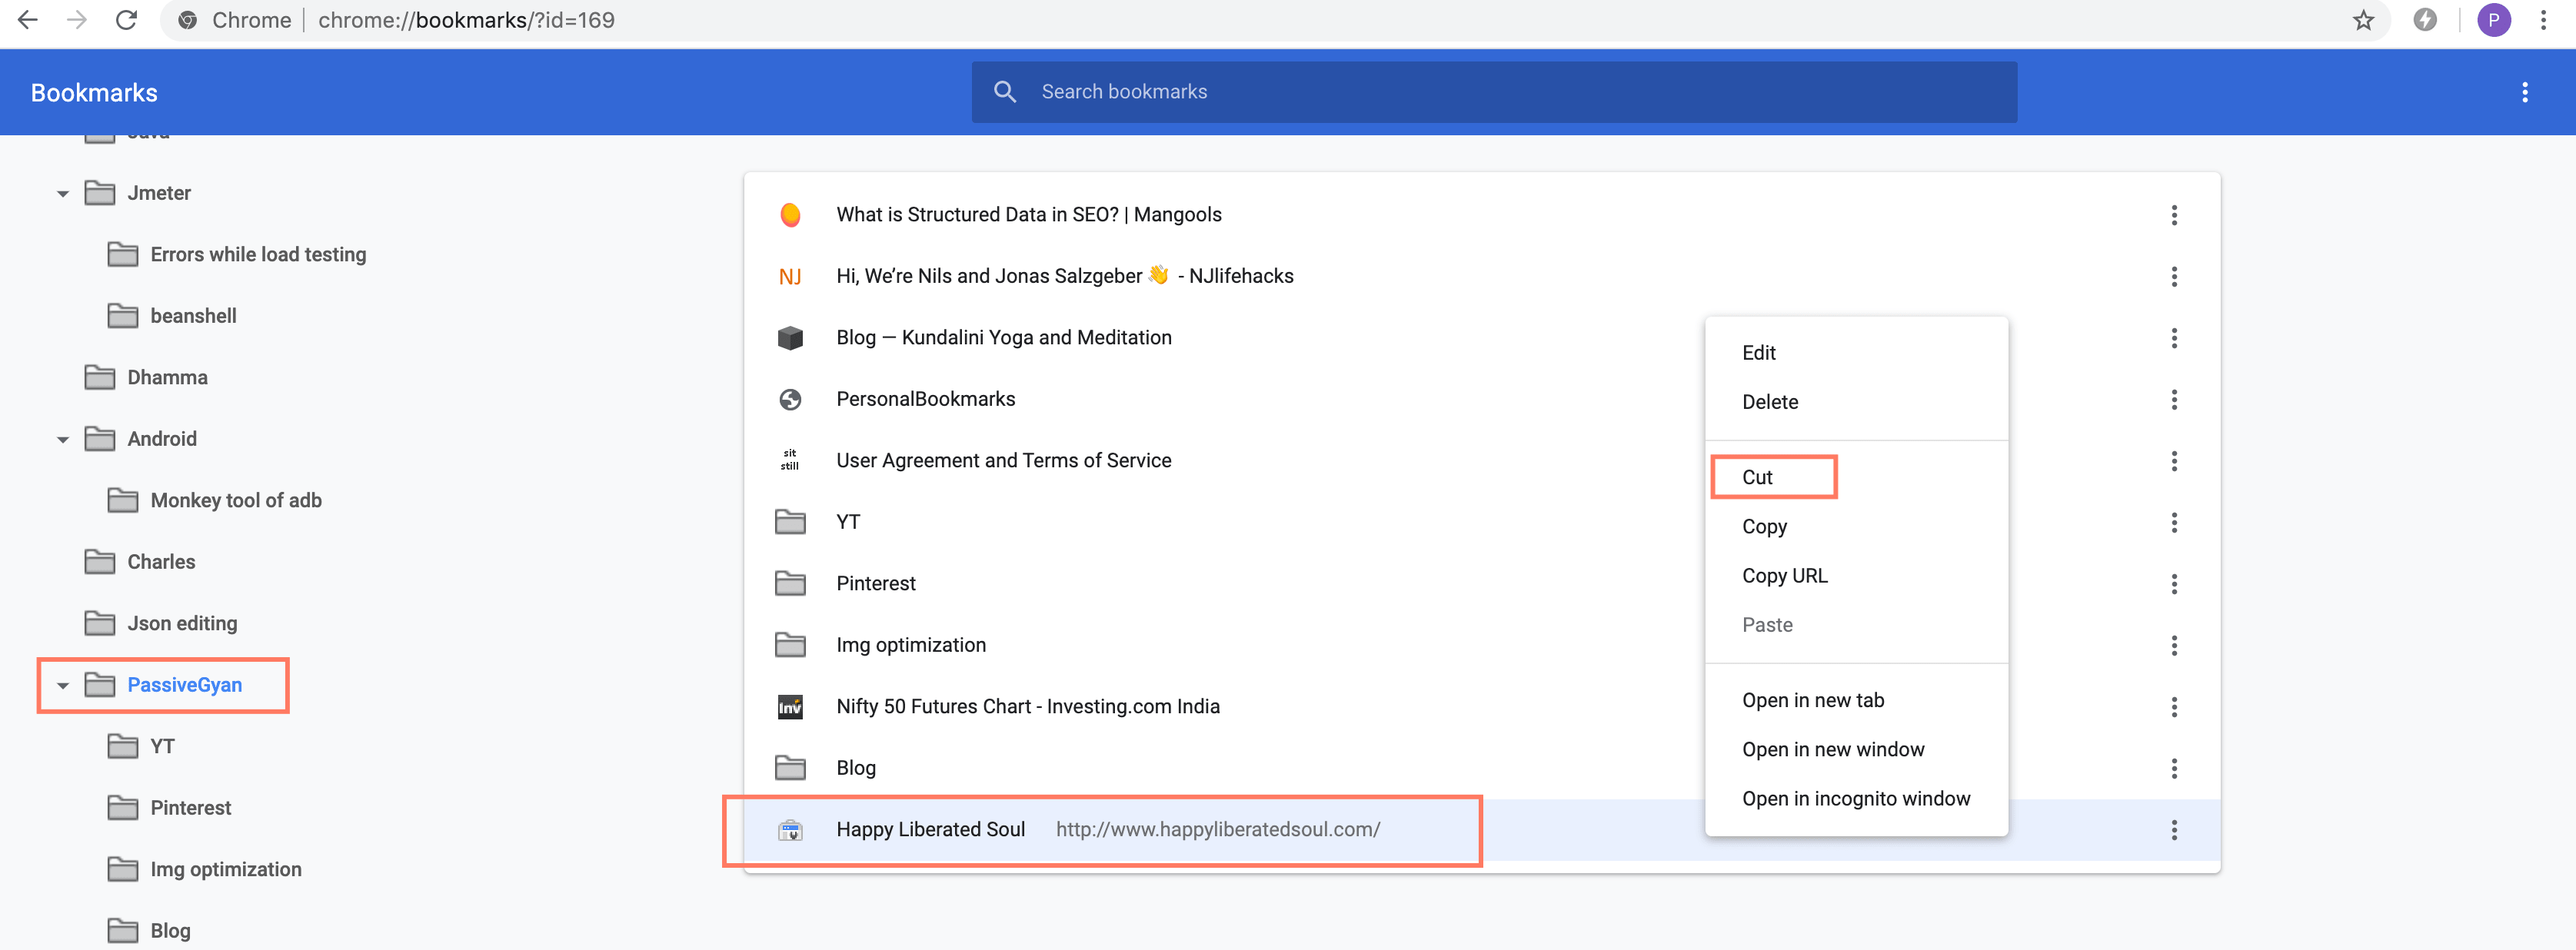 Move or cut bookmarks using bookmark manager